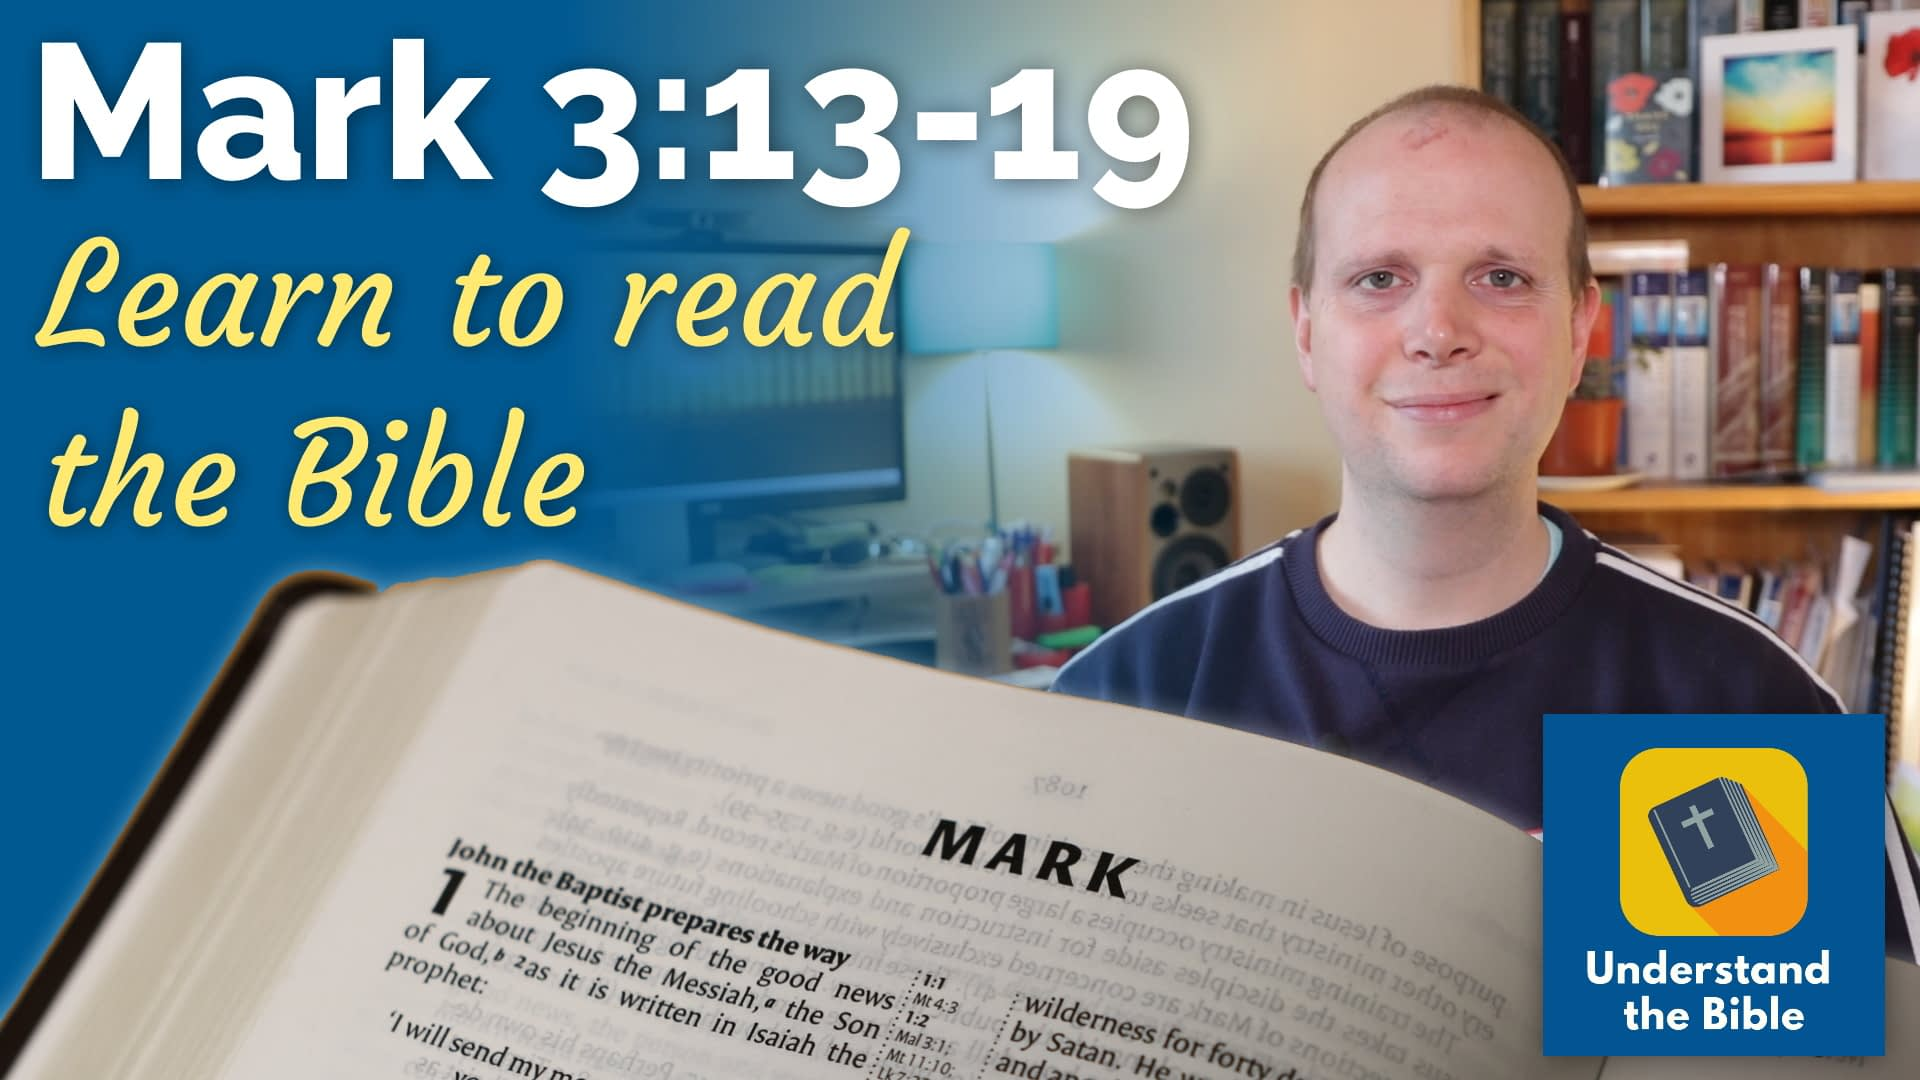 Mark 3:13-19 – Learn to read the Bible #12